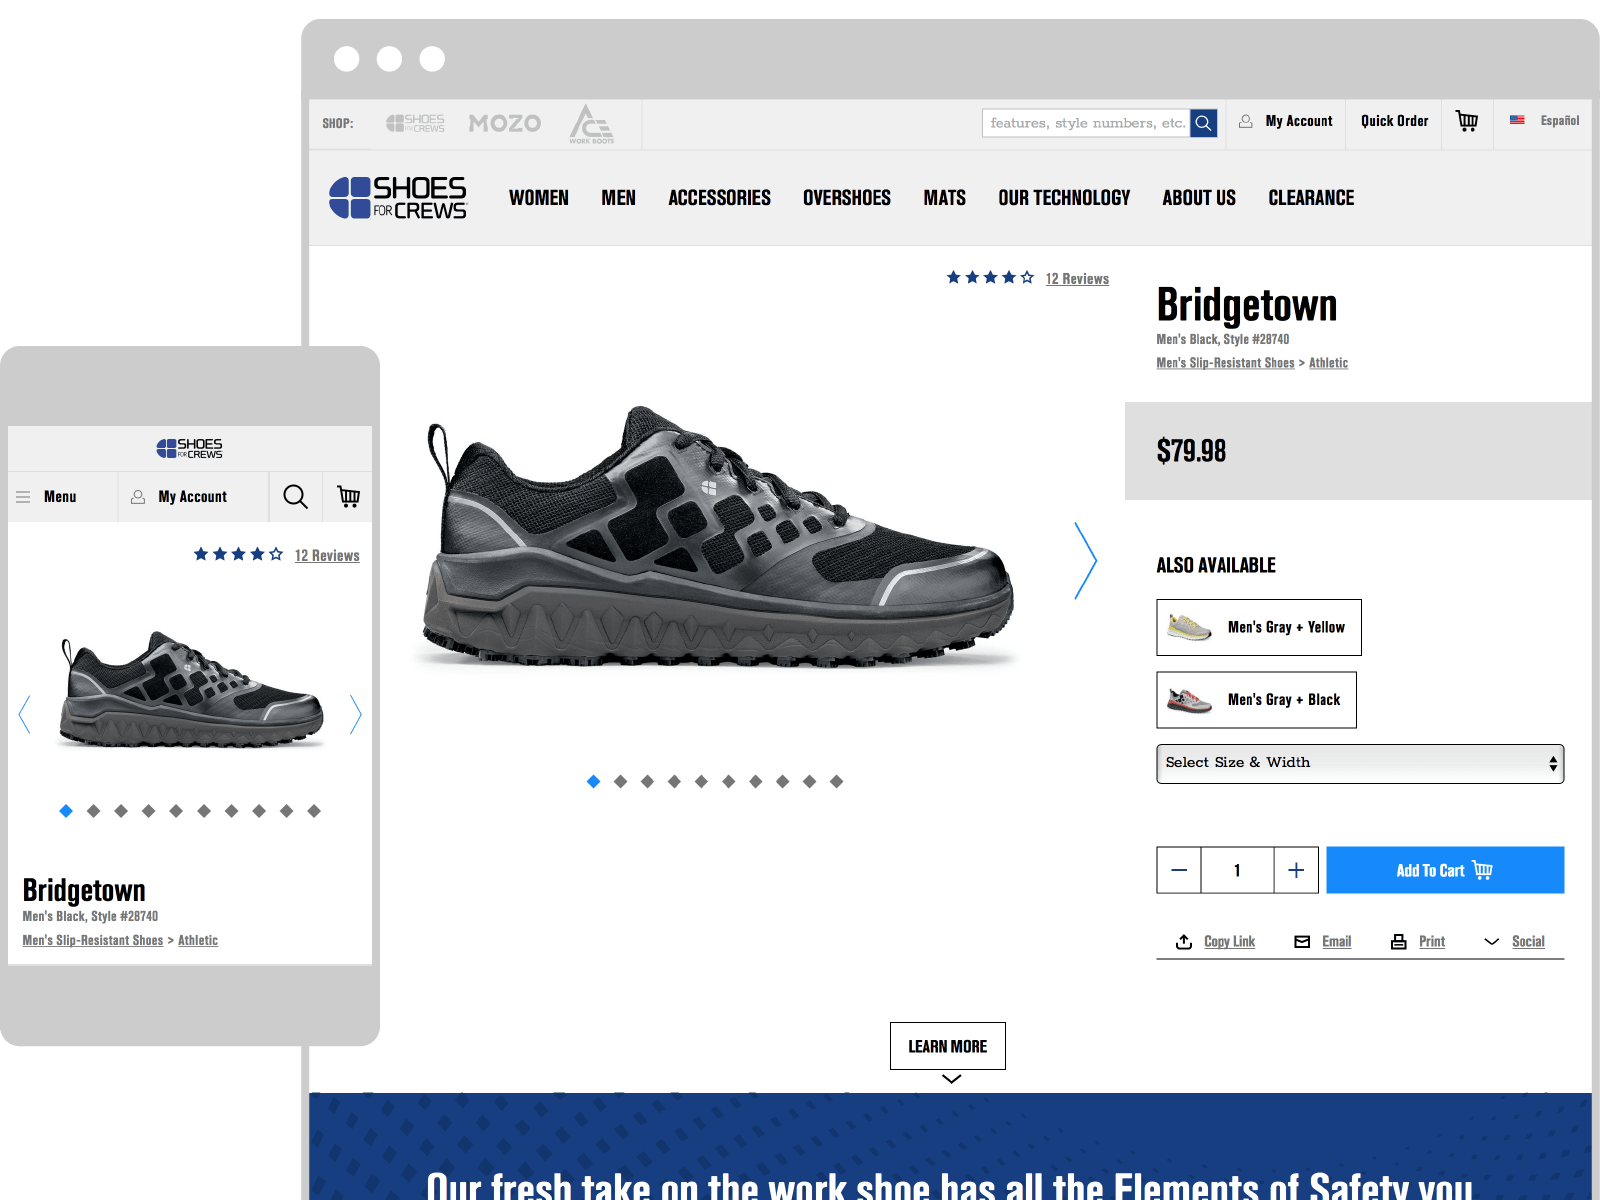 The new Shoes for Crews website